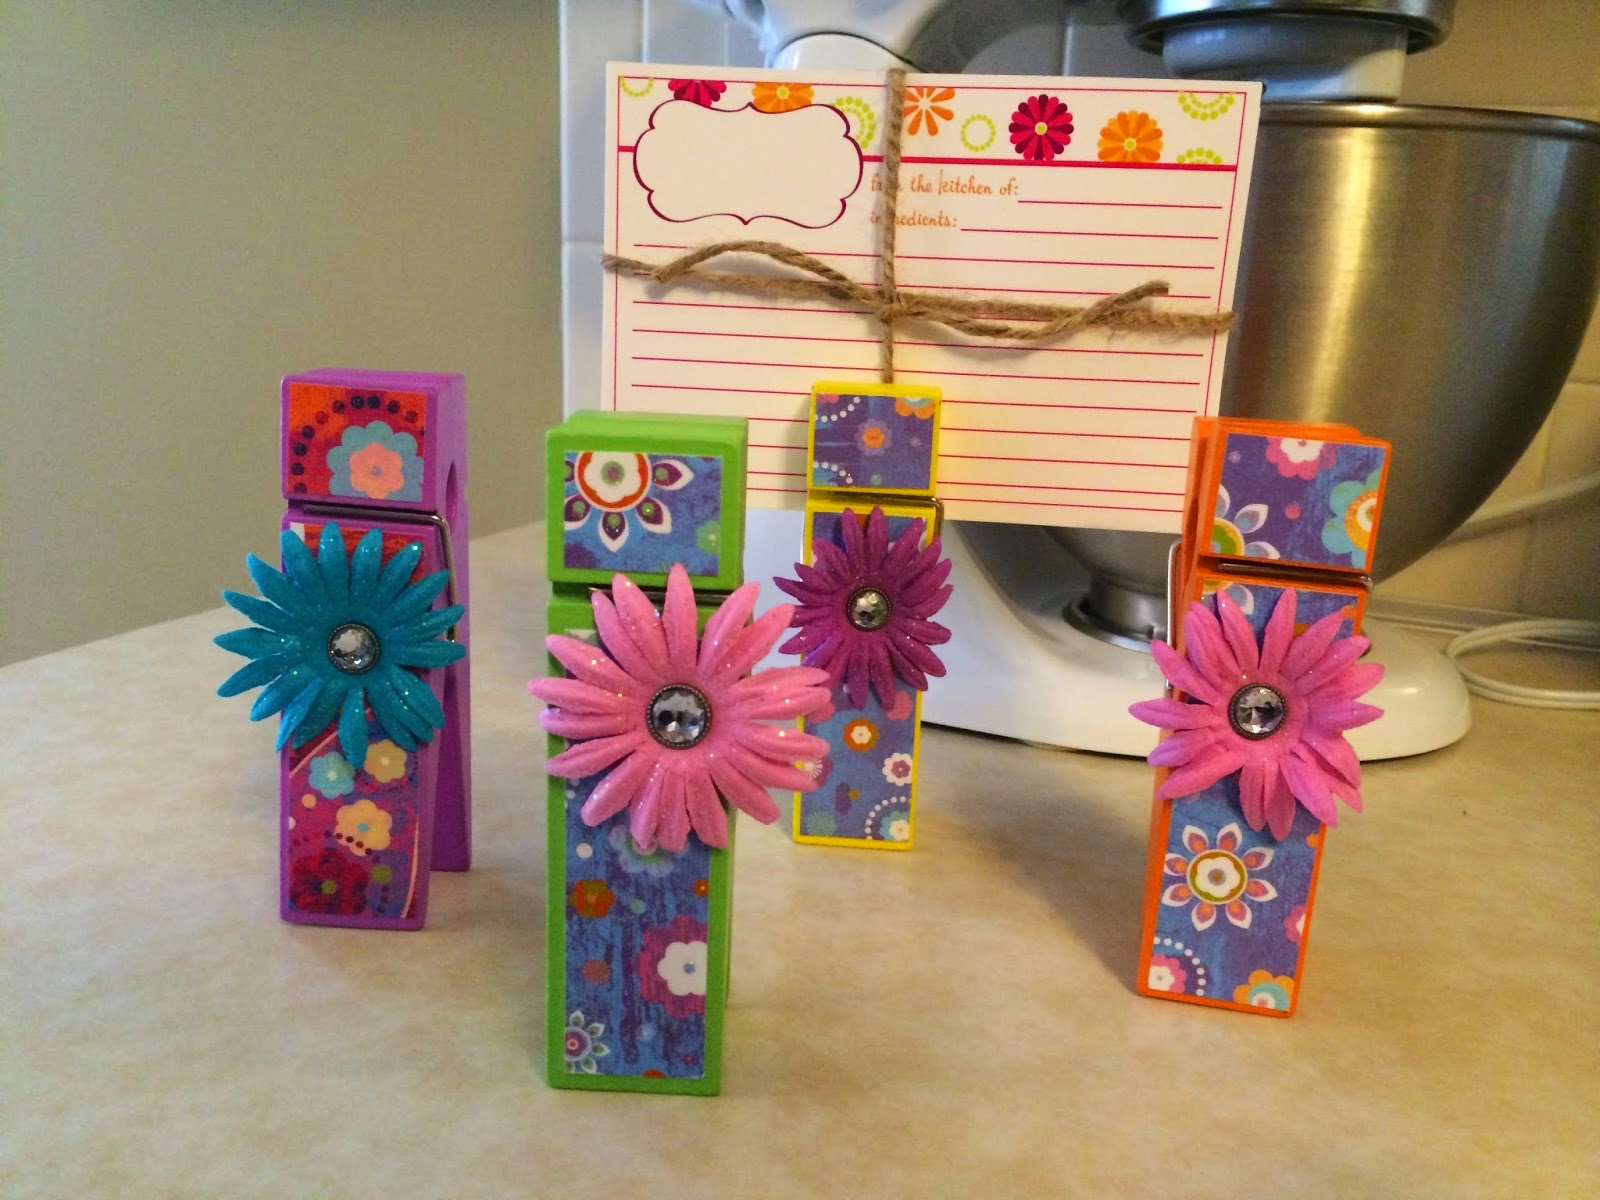 http://michaelcreations.blogspot.com/2014/09/i-love-these-little-recipe-holders-they.html